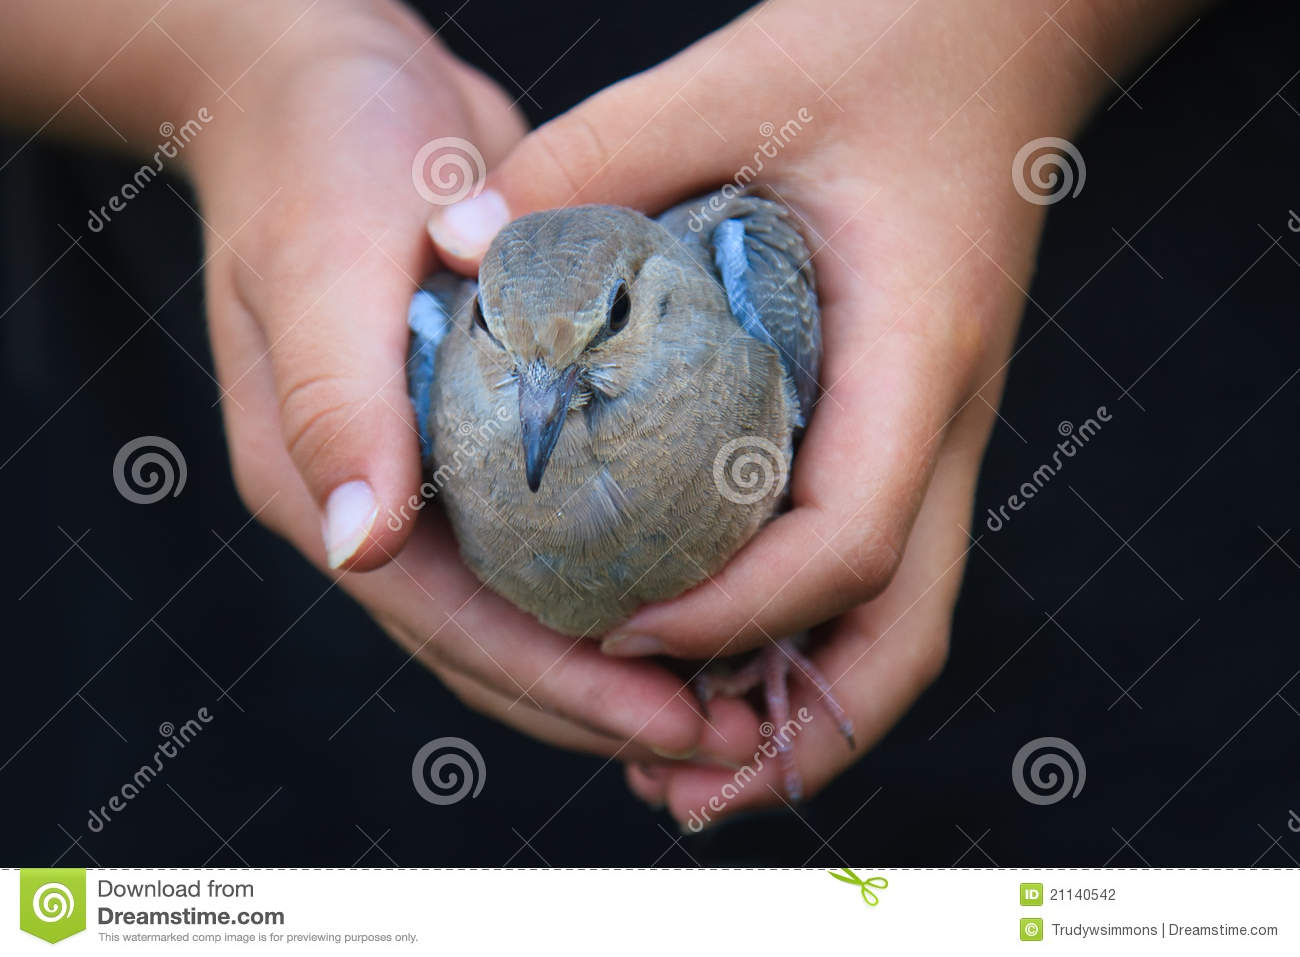 Child s Hands Holding a Bird